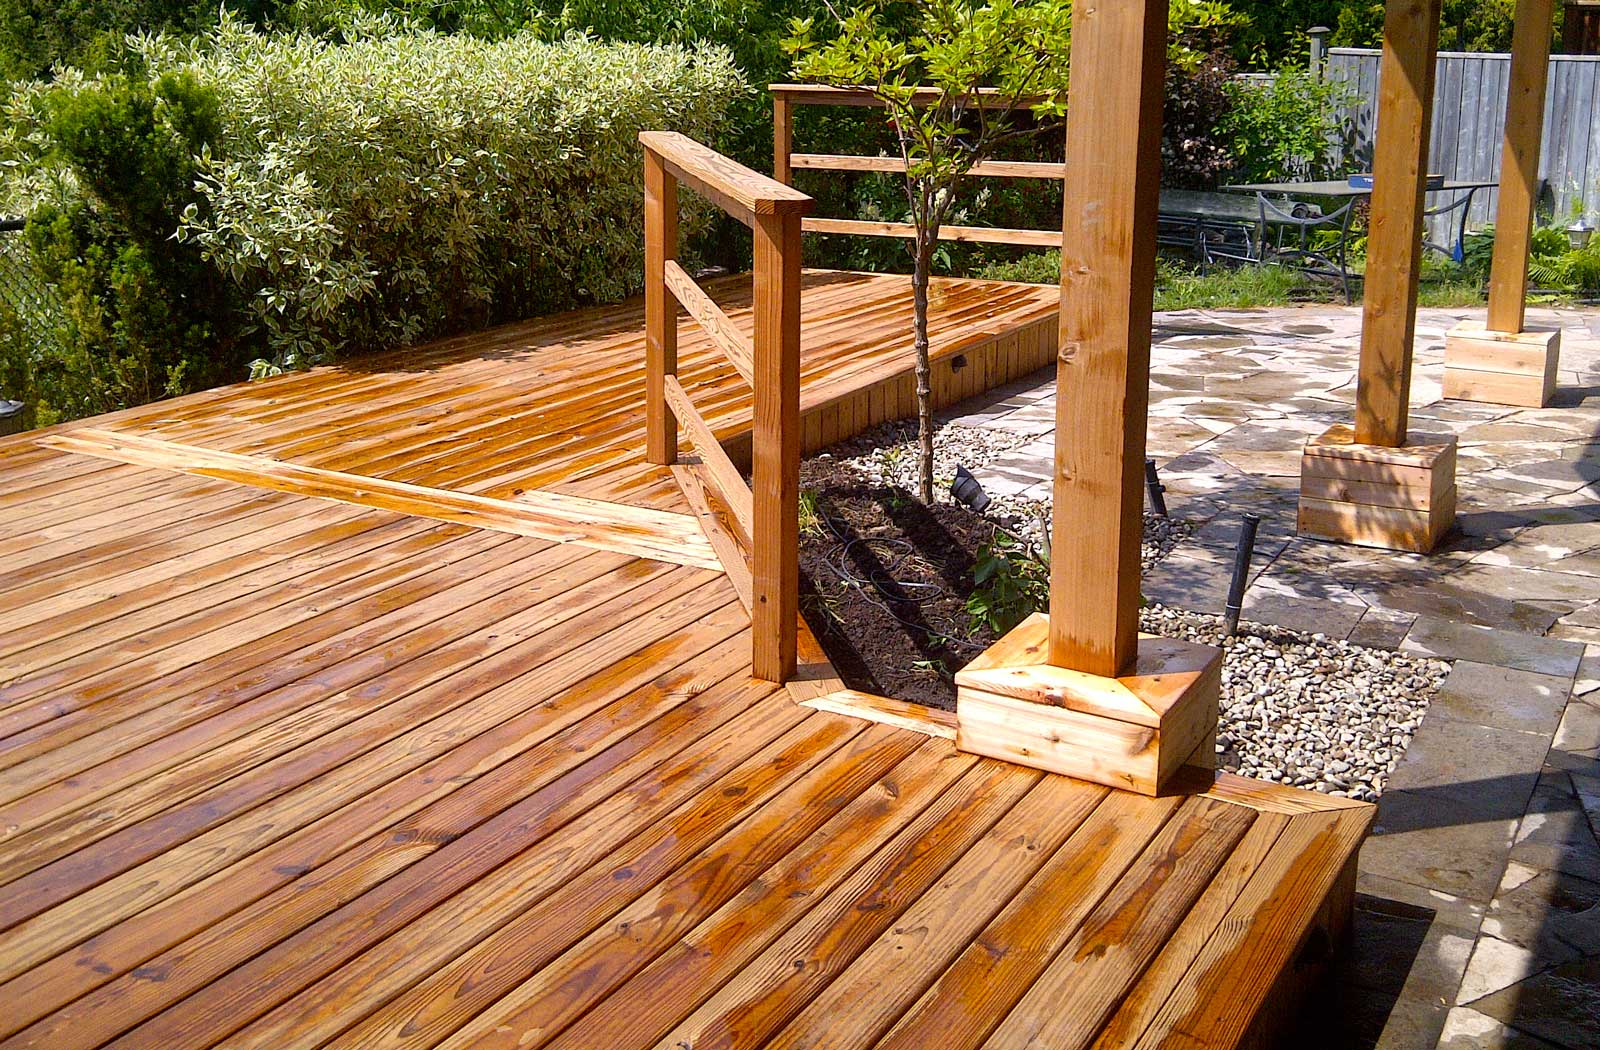 Cedar deck, interlocking, stone pebbles, landscaping, cedar railings,